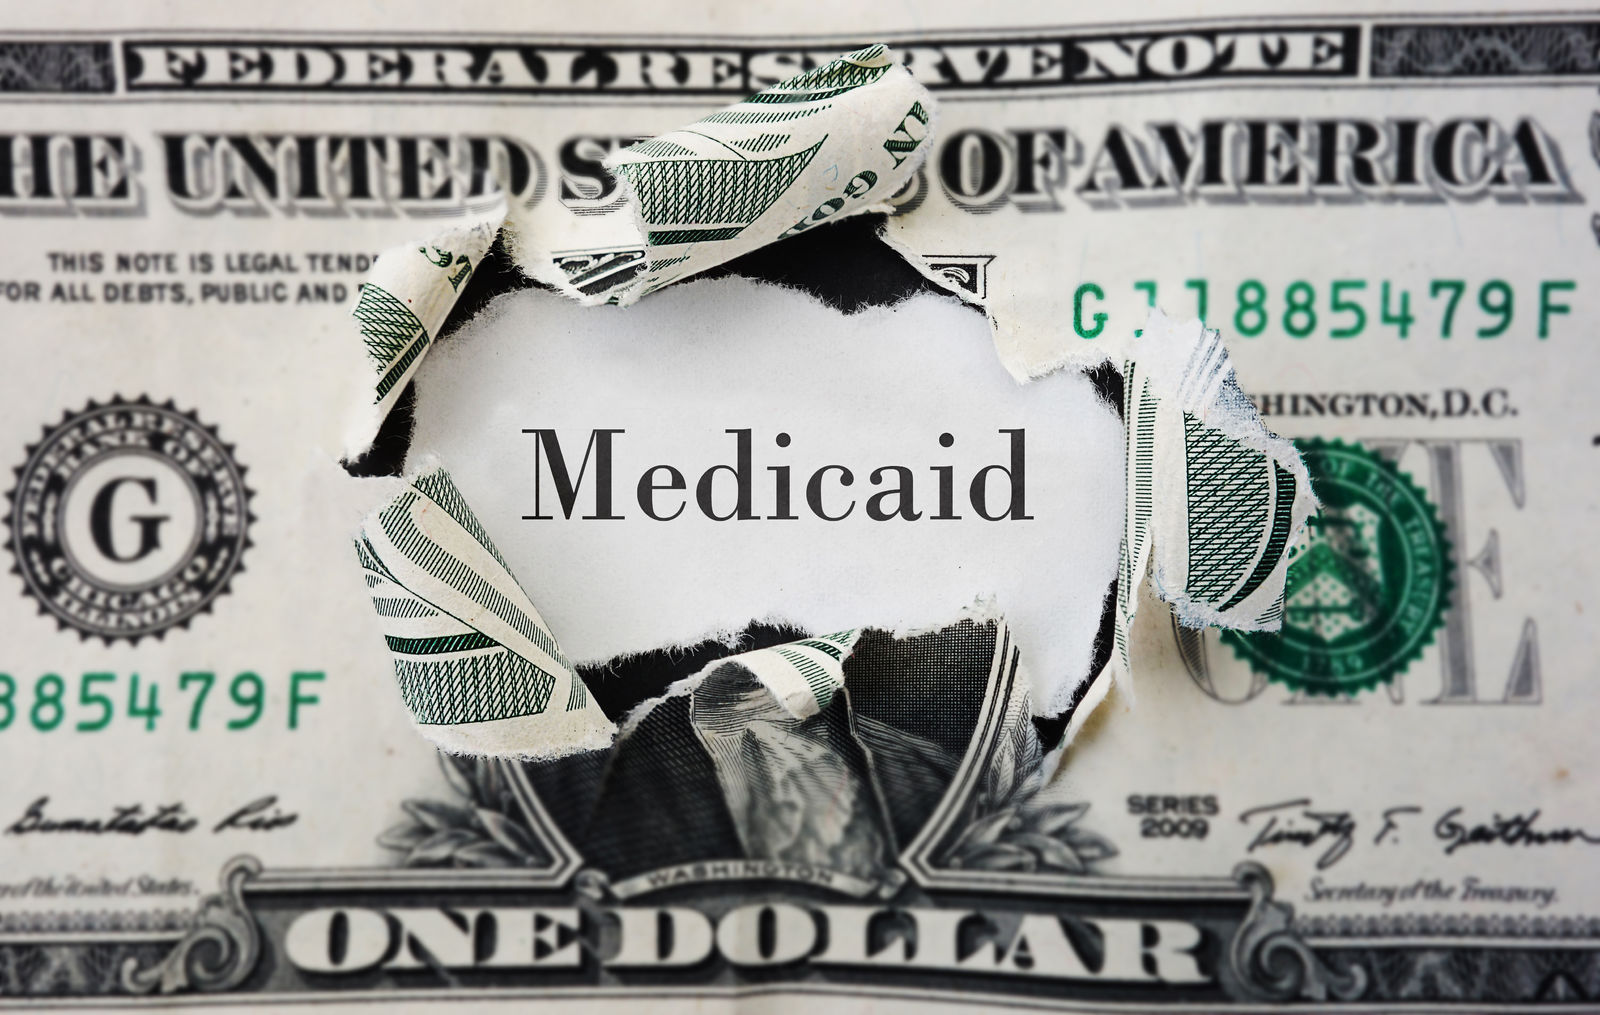 Finding Insurance Through Medicaid